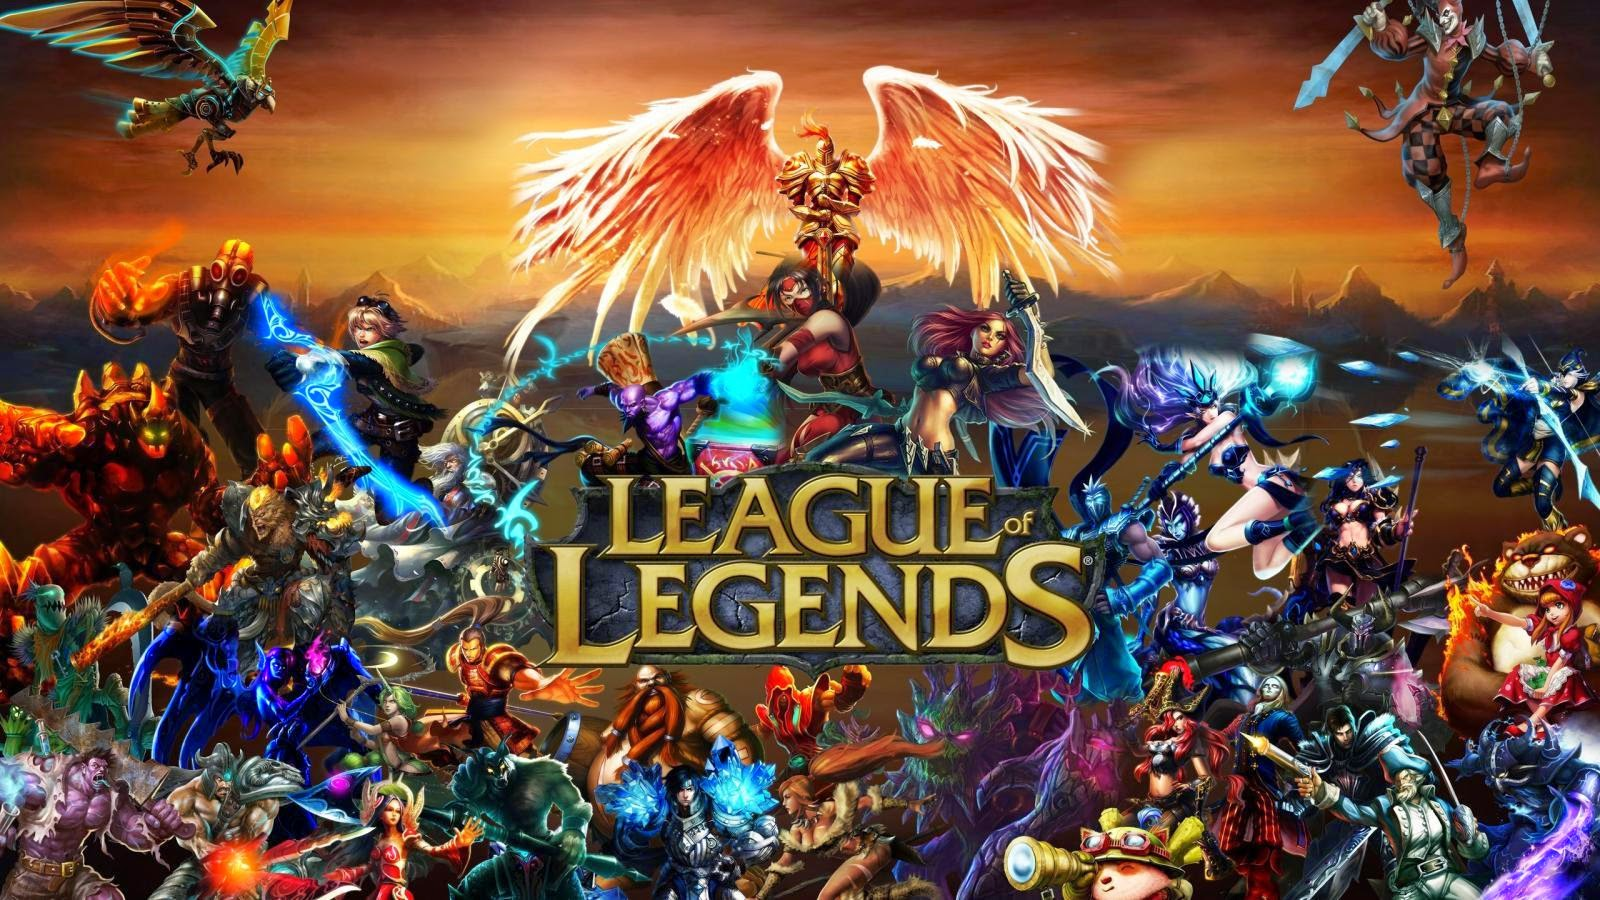 http://androidhackings.blogspot.in/2014/06/league-of-legends-hack-tool-roit-points.html